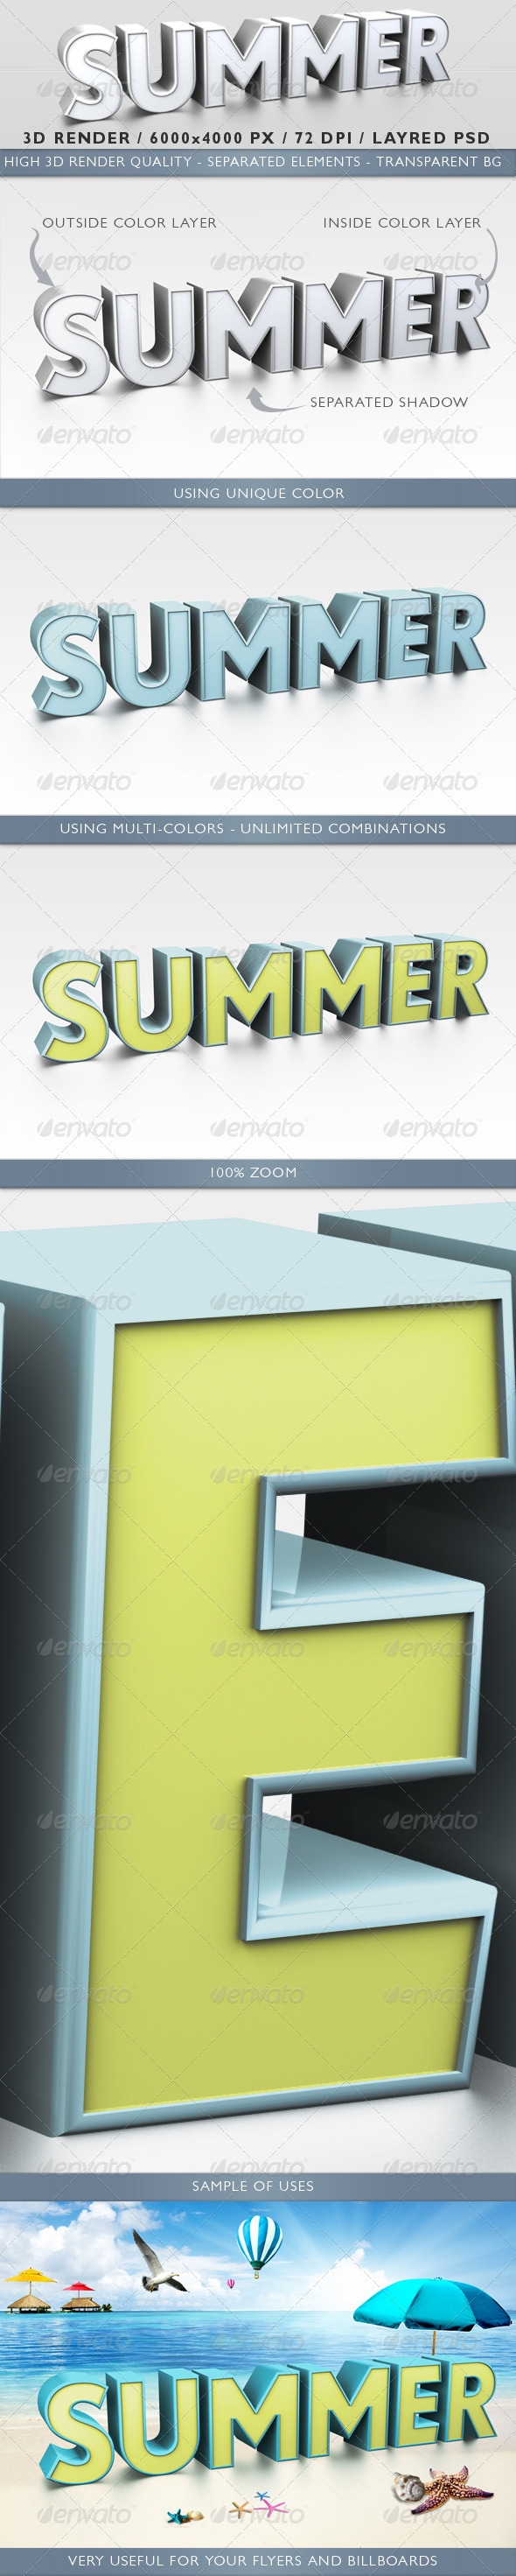 GraphicRiver 3D Render of a Summer Word 2631849